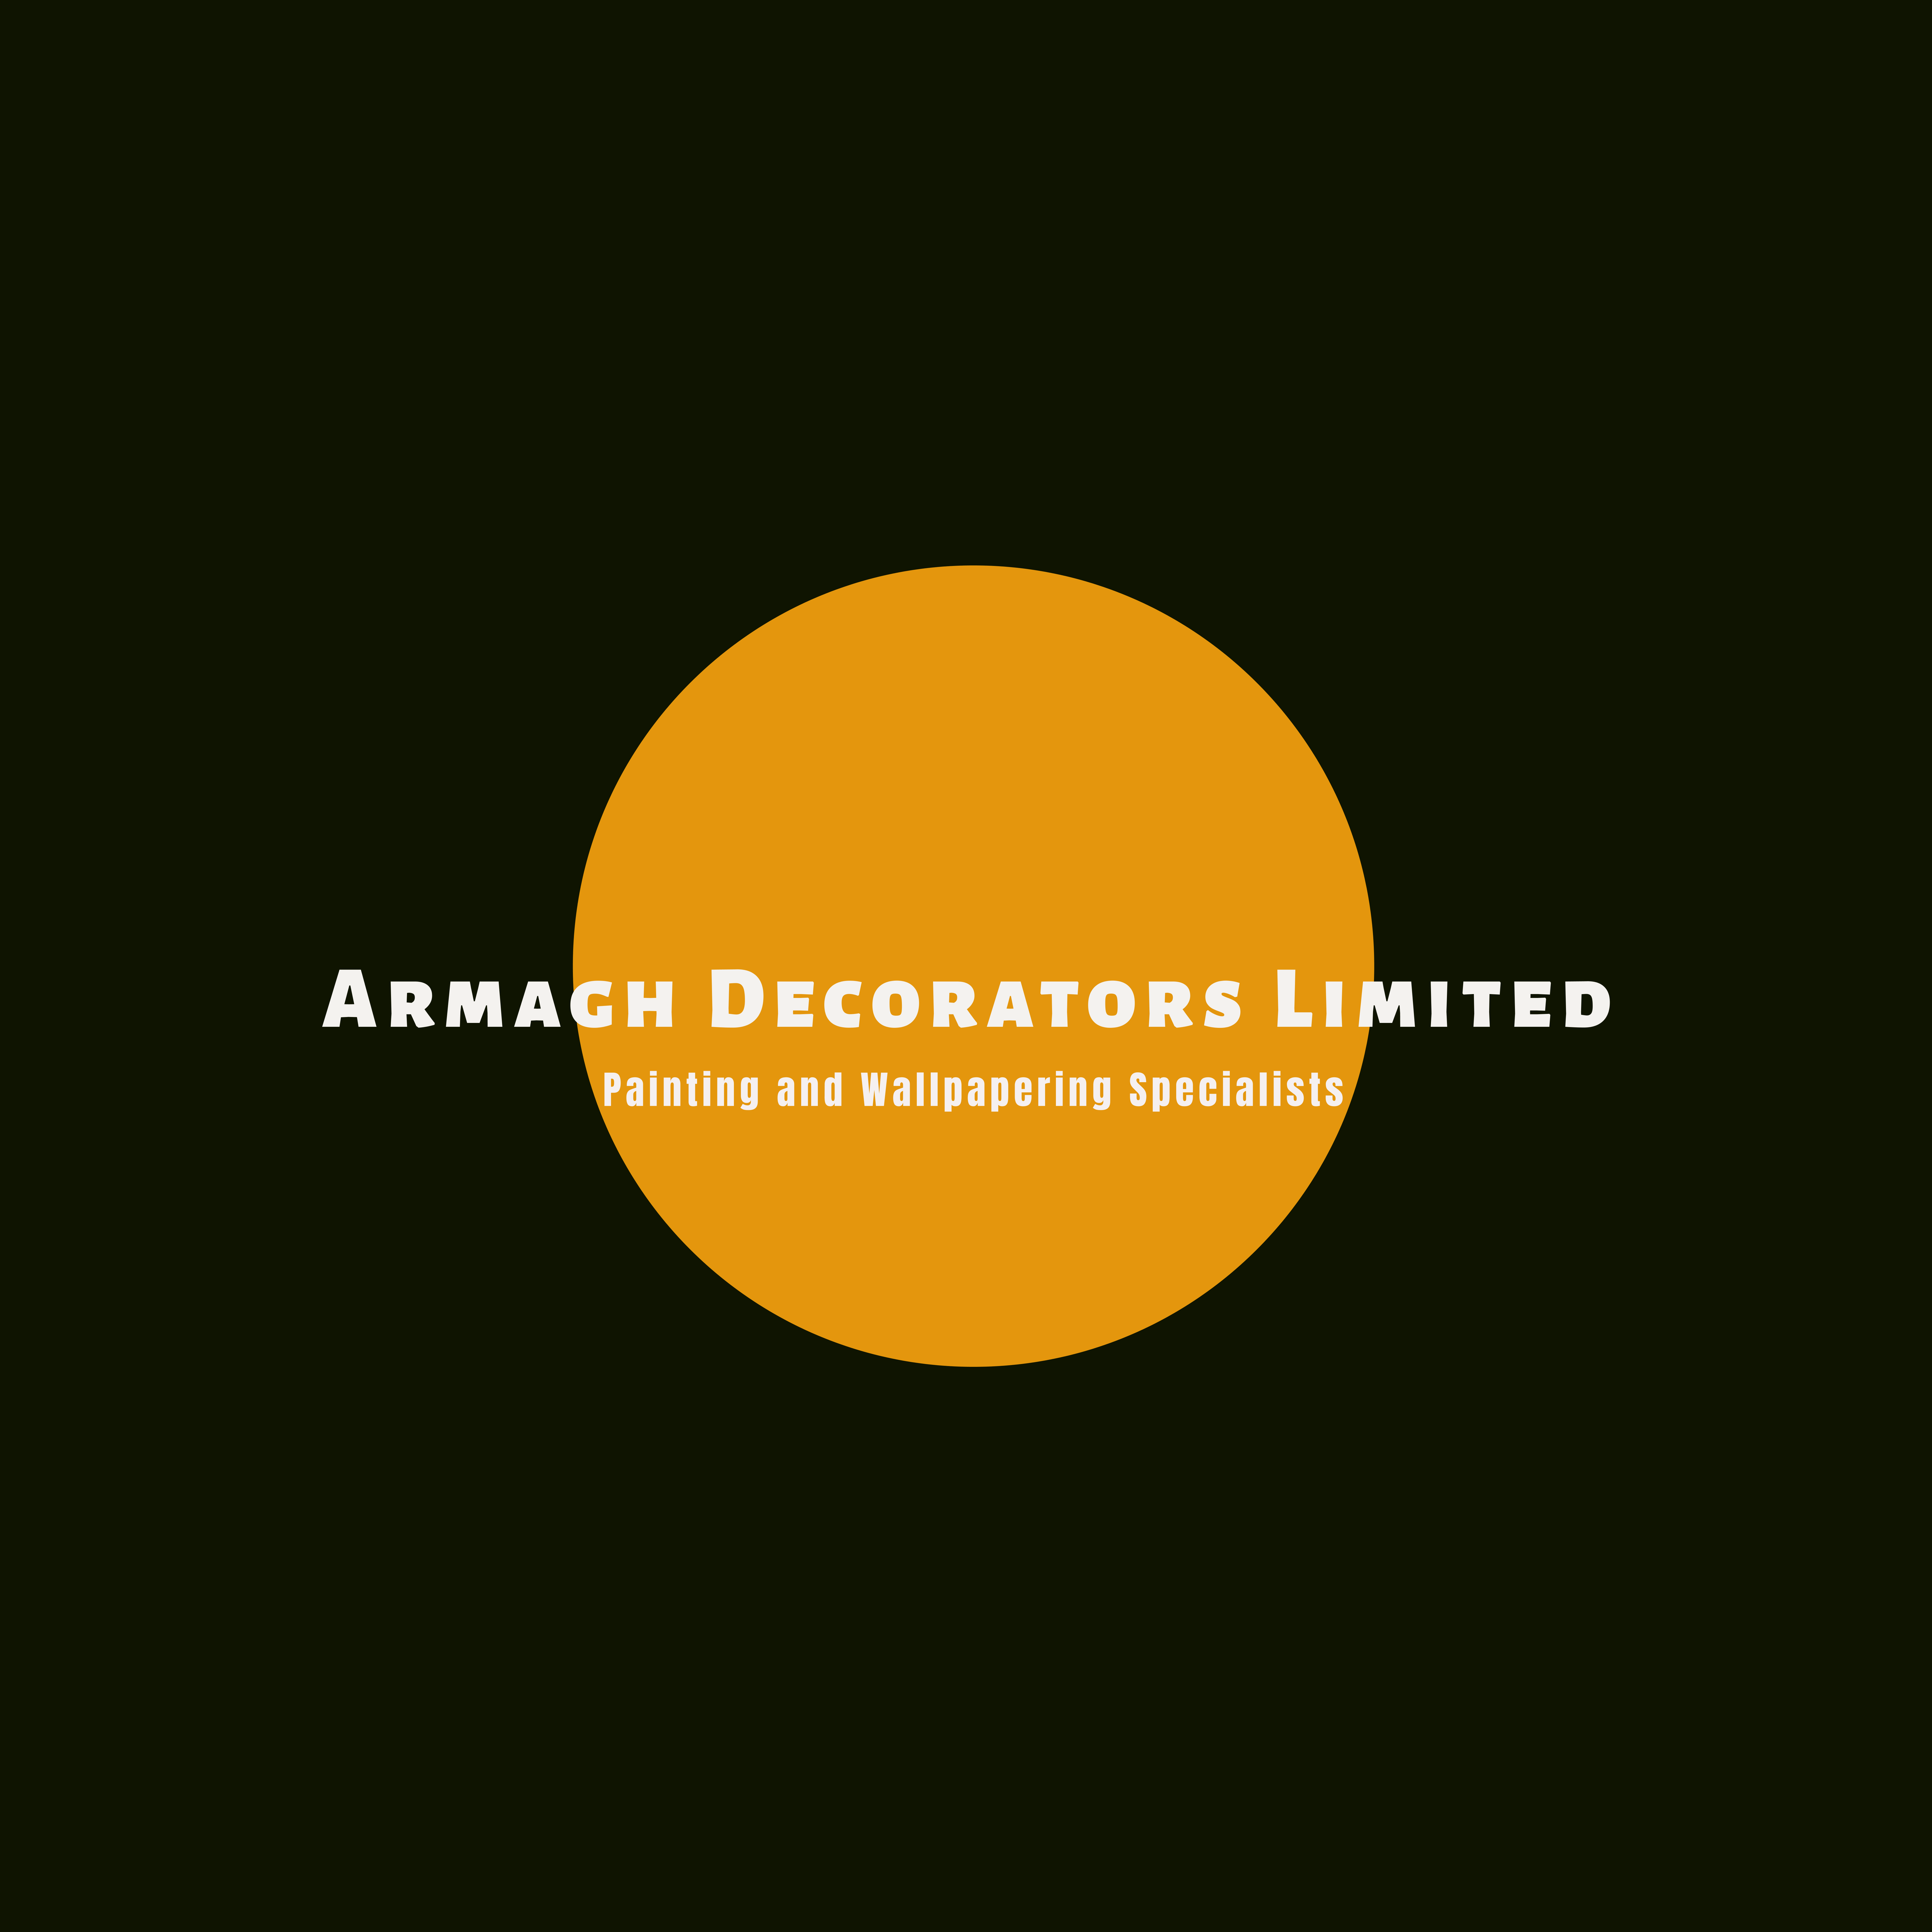 Armagh Decorators Ltd